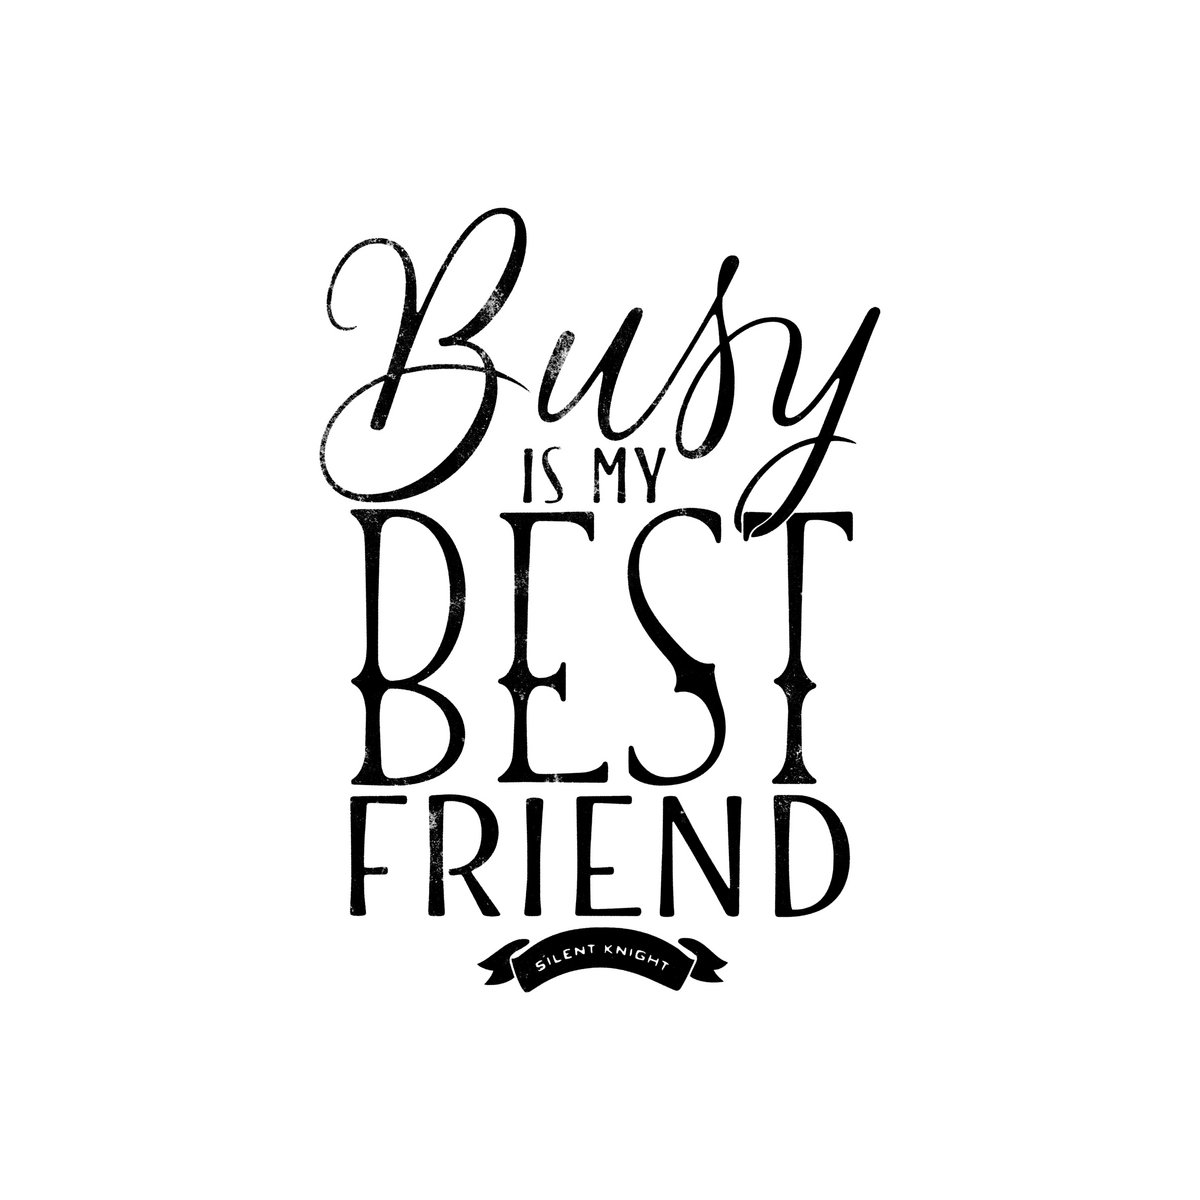 Pretentious Busy Is My Friend Main Photo Busy Is My Friend Silent Knight Friend Images Cartoon Friend Images Status inspiration Best Friend Images